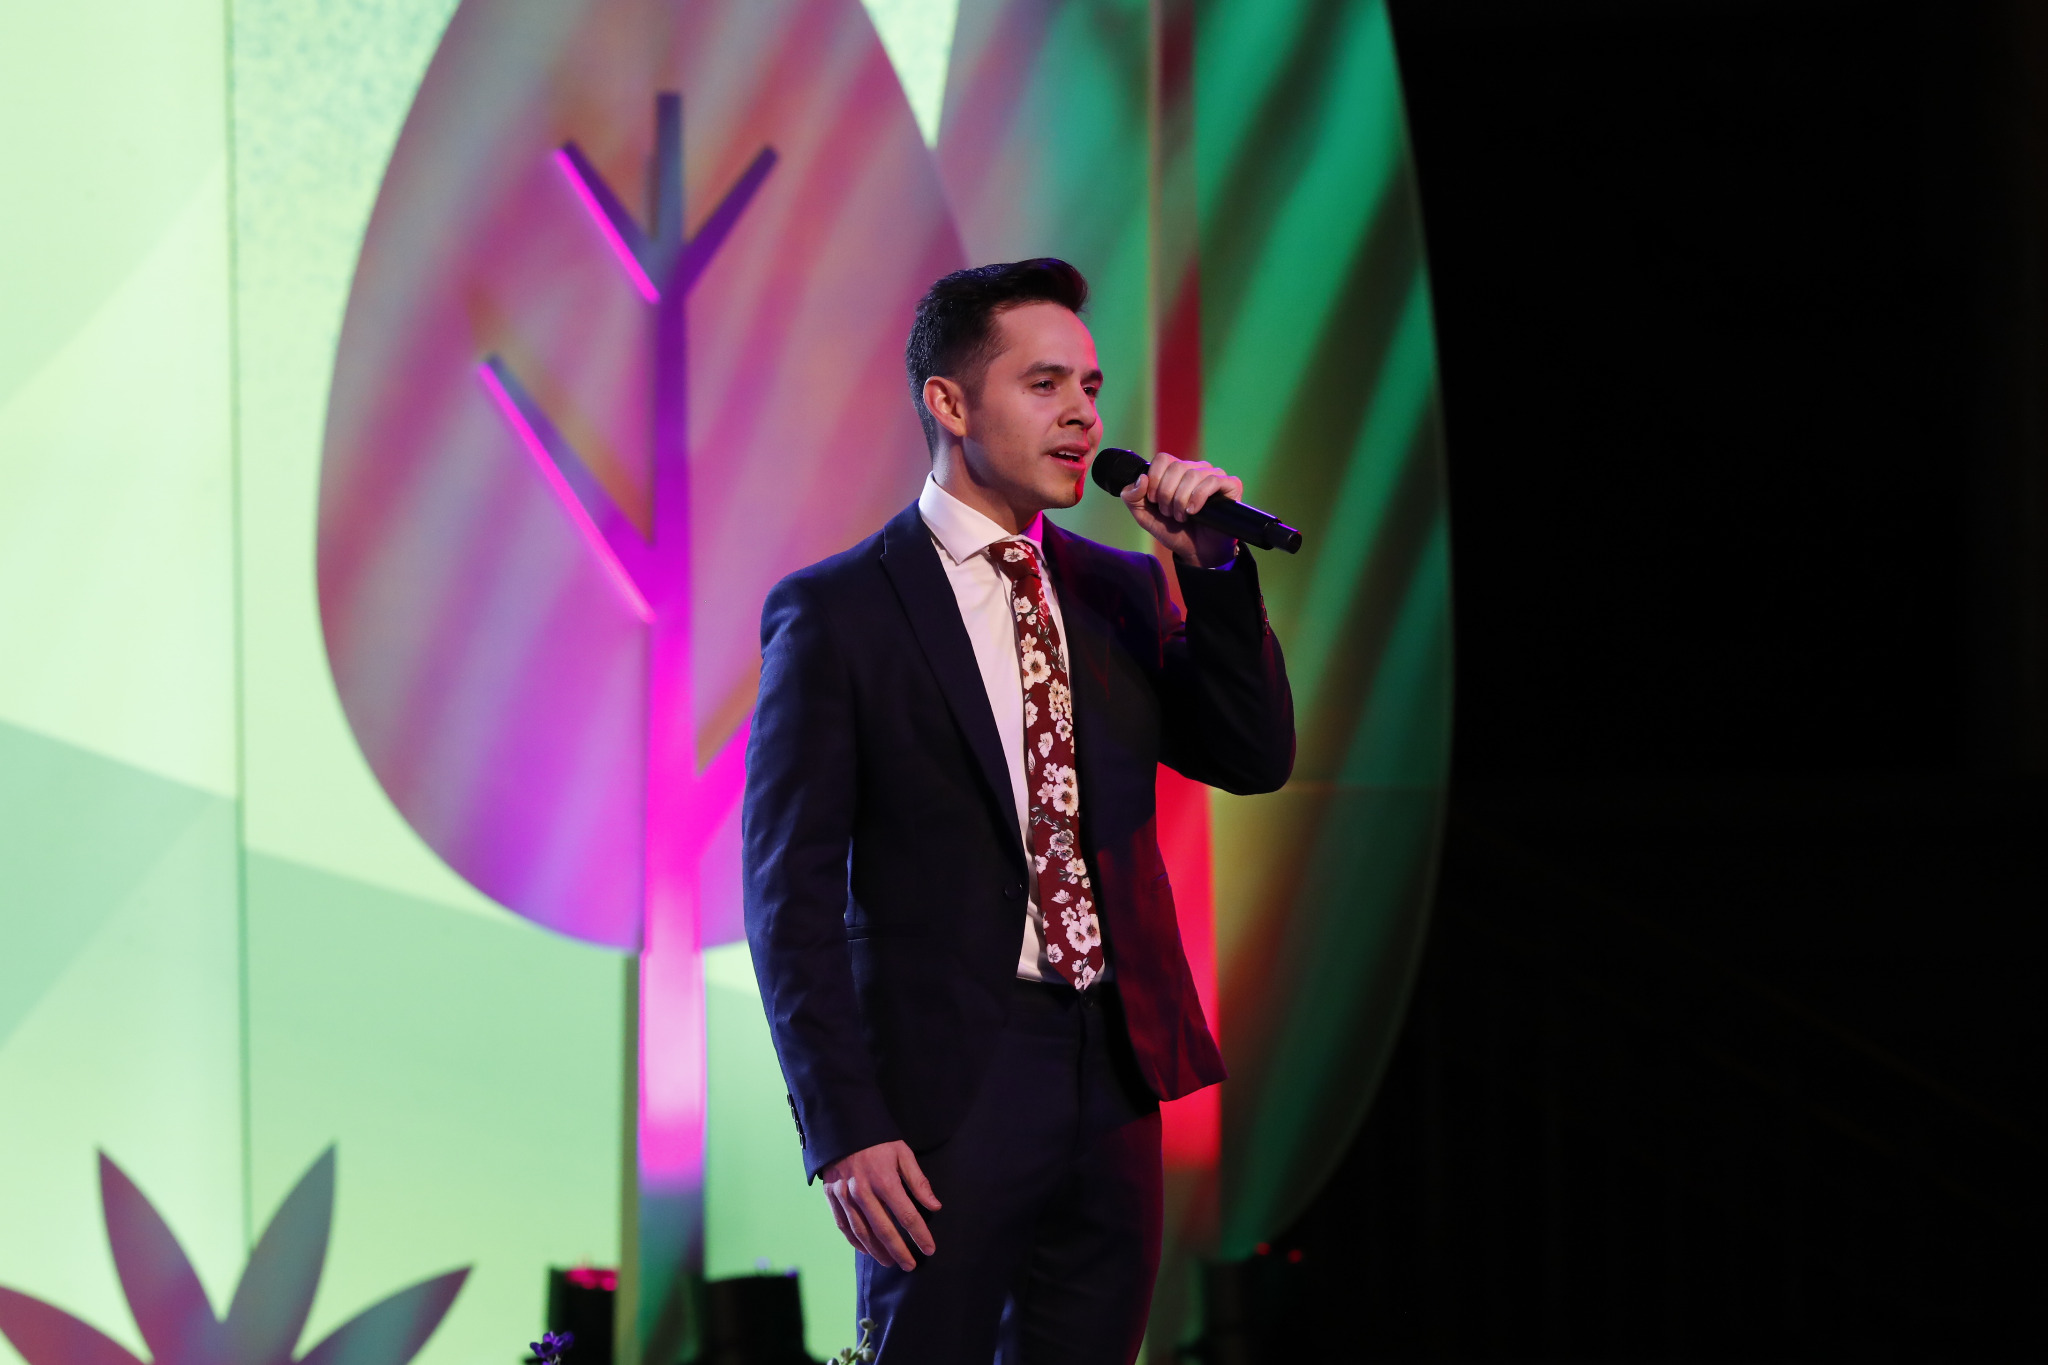 David Archuleta, a member of The Church of Jesus Christ of Latter-day Saints, performs the 2020 youth theme song at the Face to Face for youth and children held on Nov. 17, 2019.